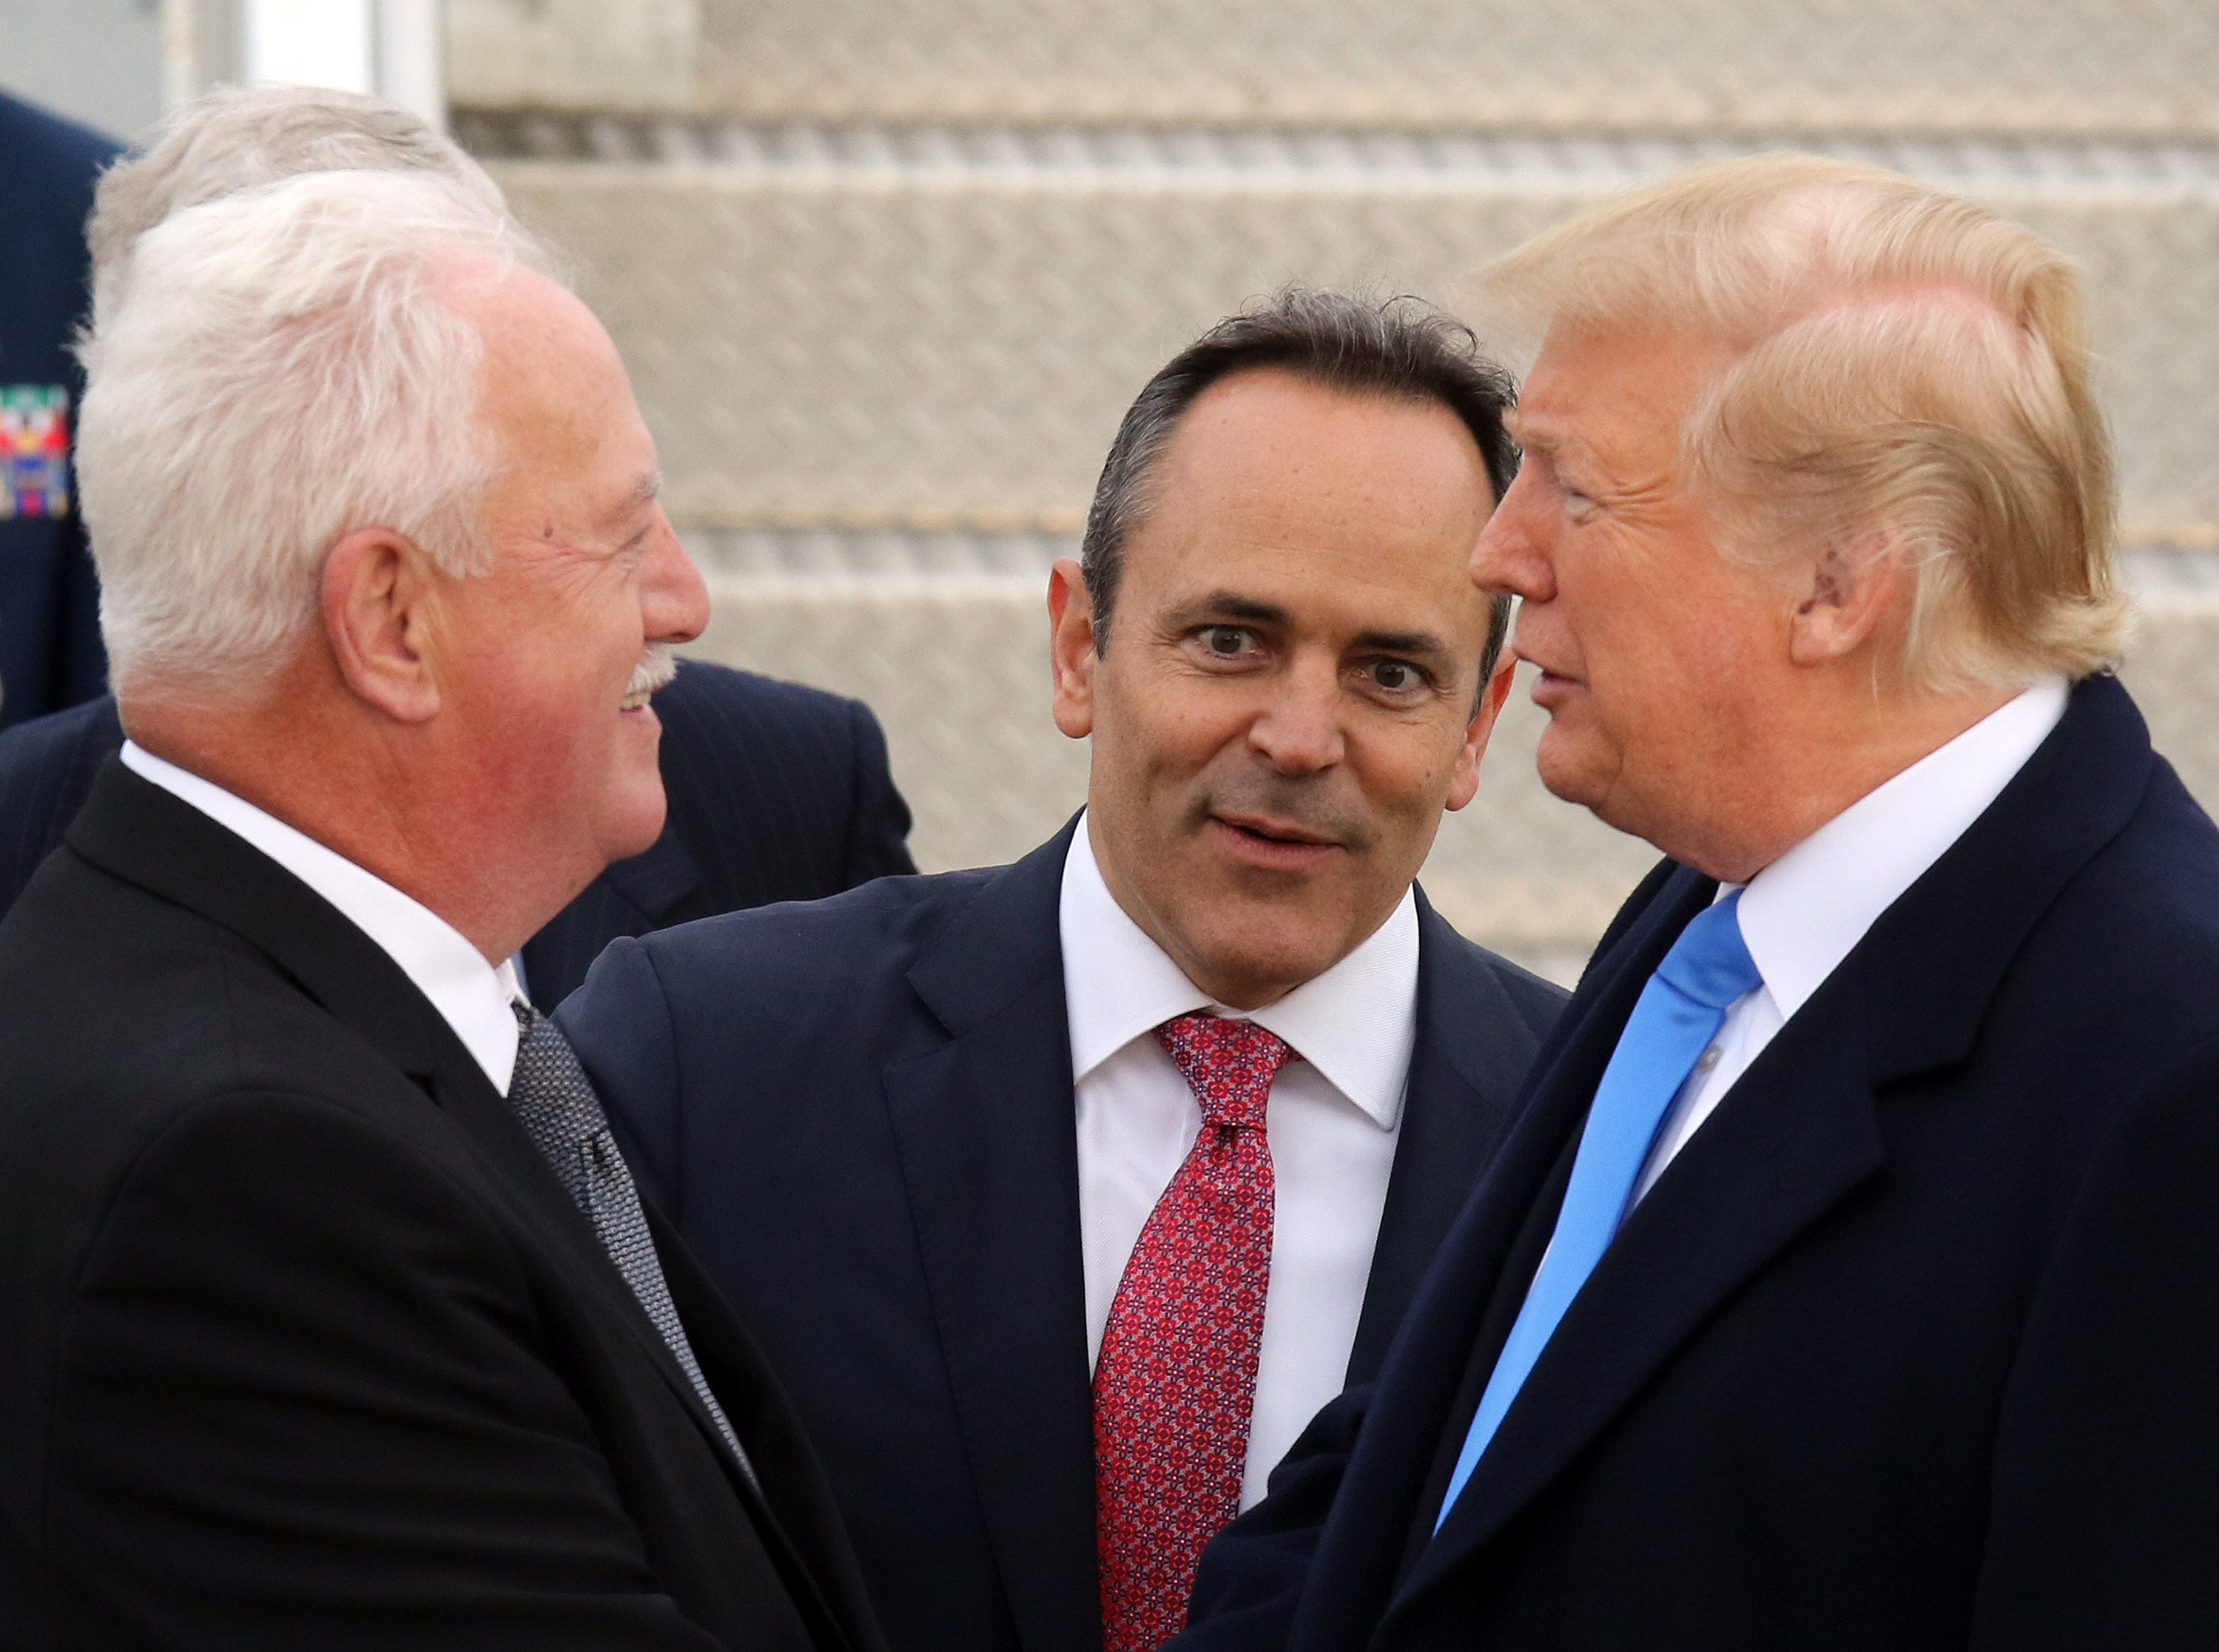 Gov. Bevin, middle, looks on as President Trump, right, greets an individual near Air Force One at Bluegrass Airport in Lexington, Oct. 13, 2018.